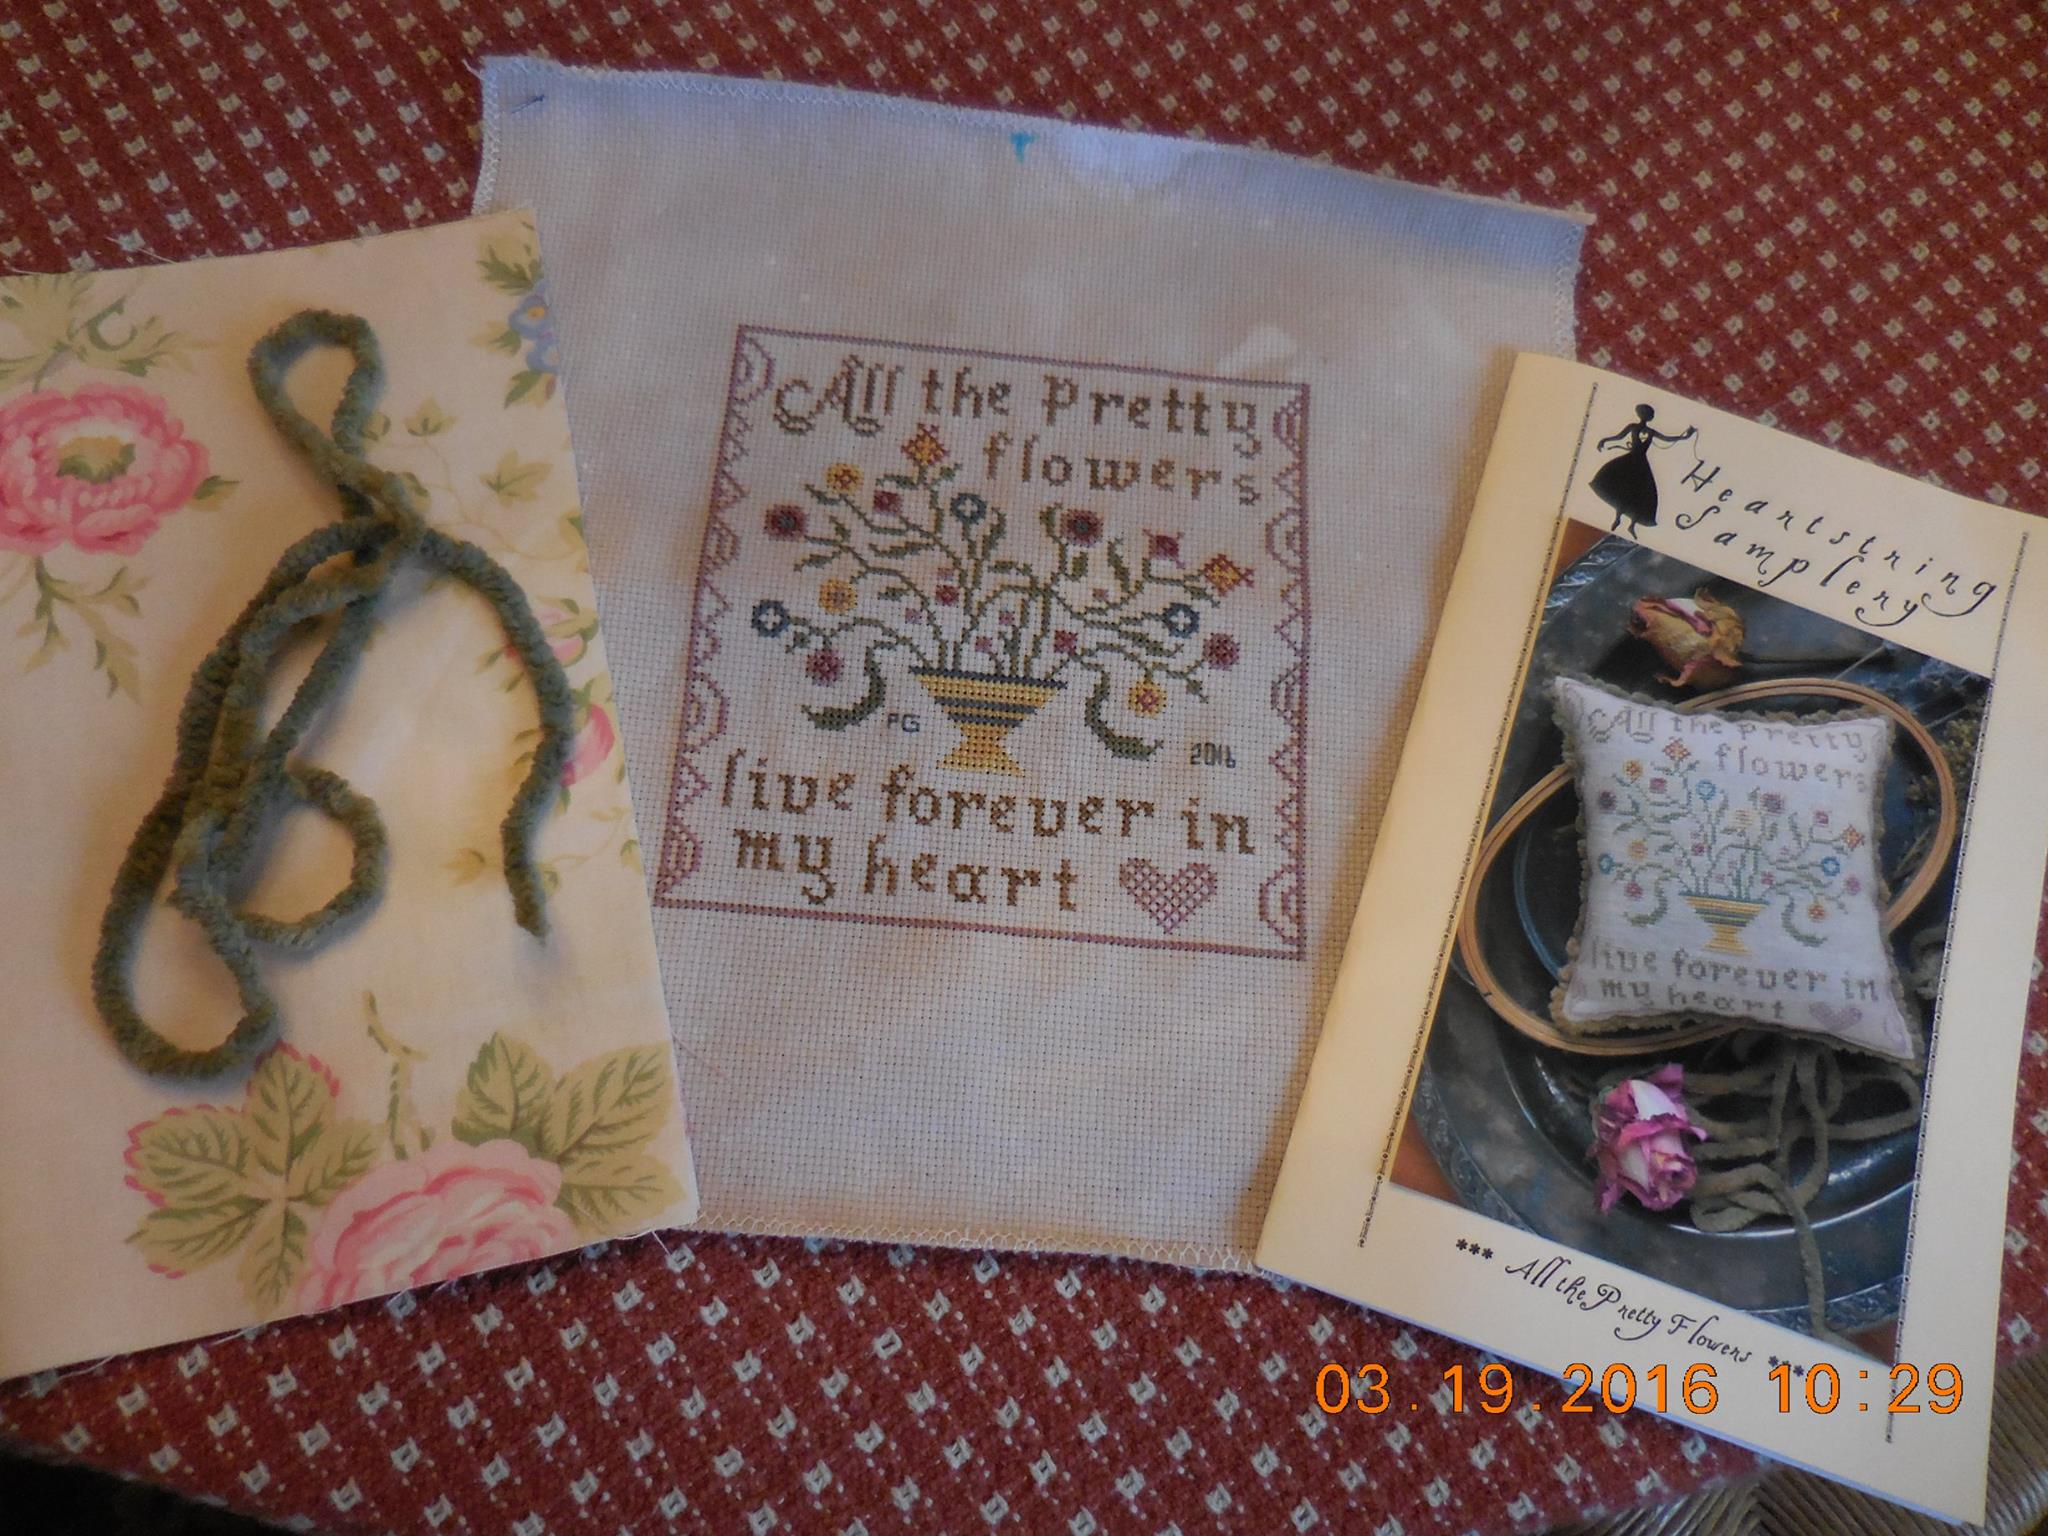 All The Pretty Flowers By Heartstring Samplery Pats Cross Stitch